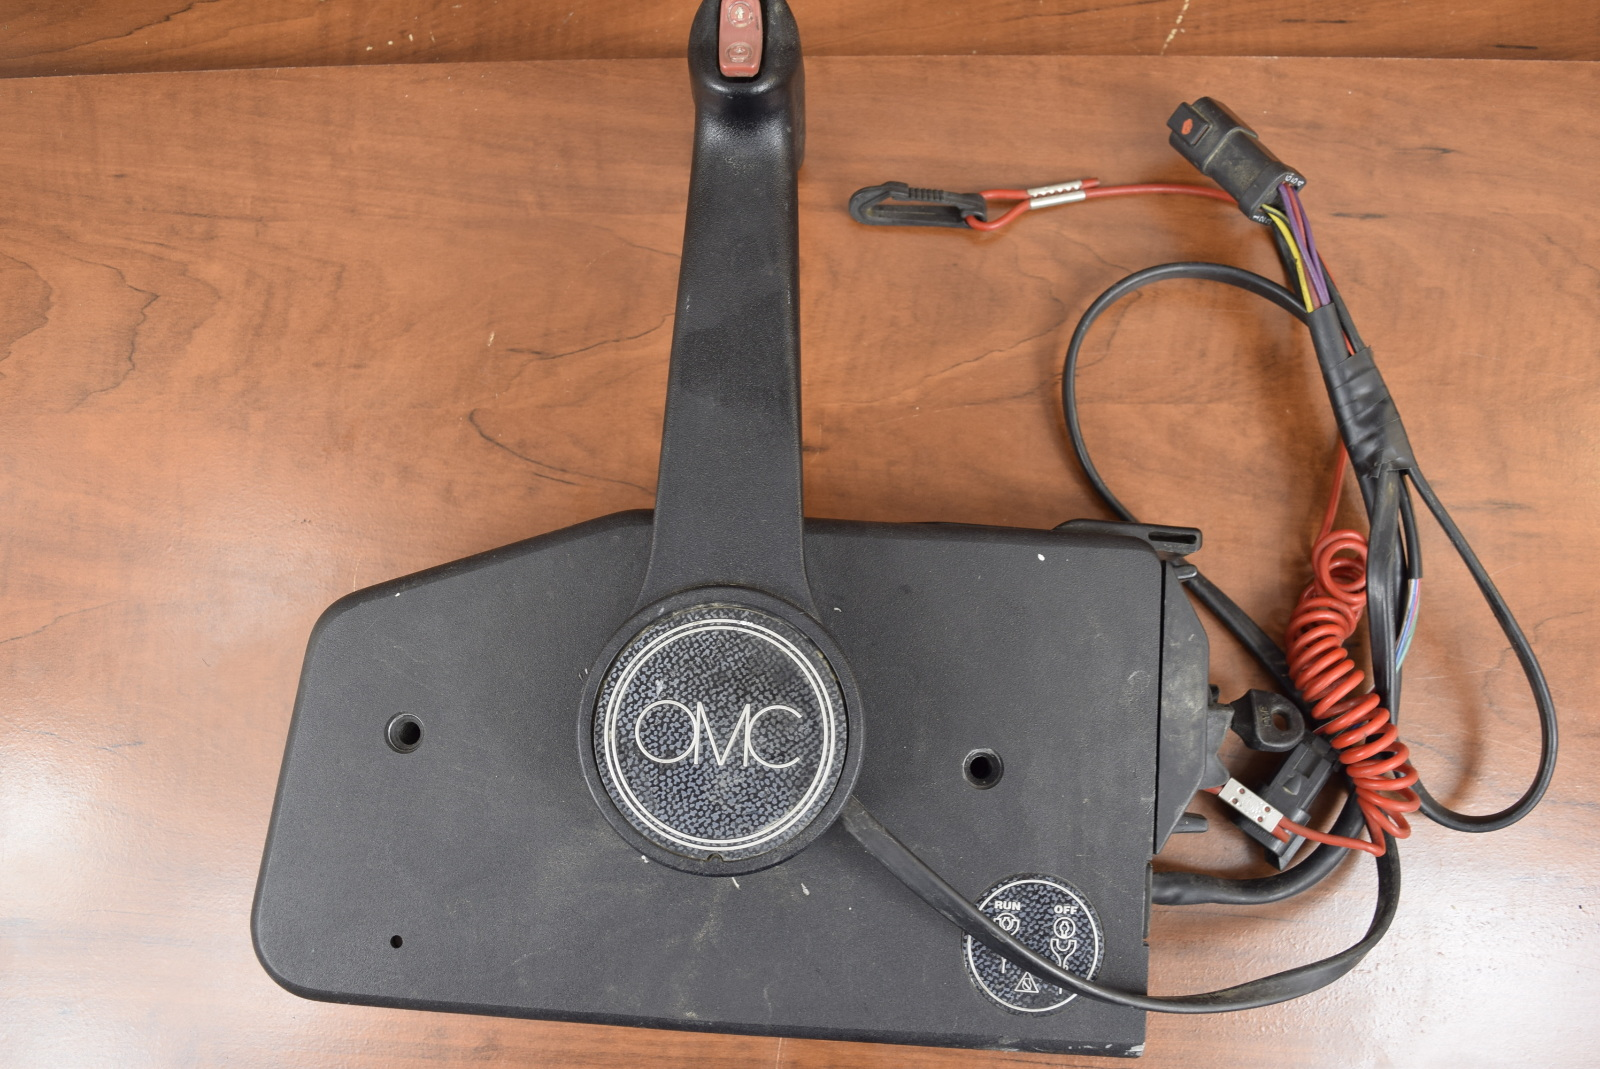 Evinrude Control Box Parts : Omc johnson evinrude control box with trim switch and key